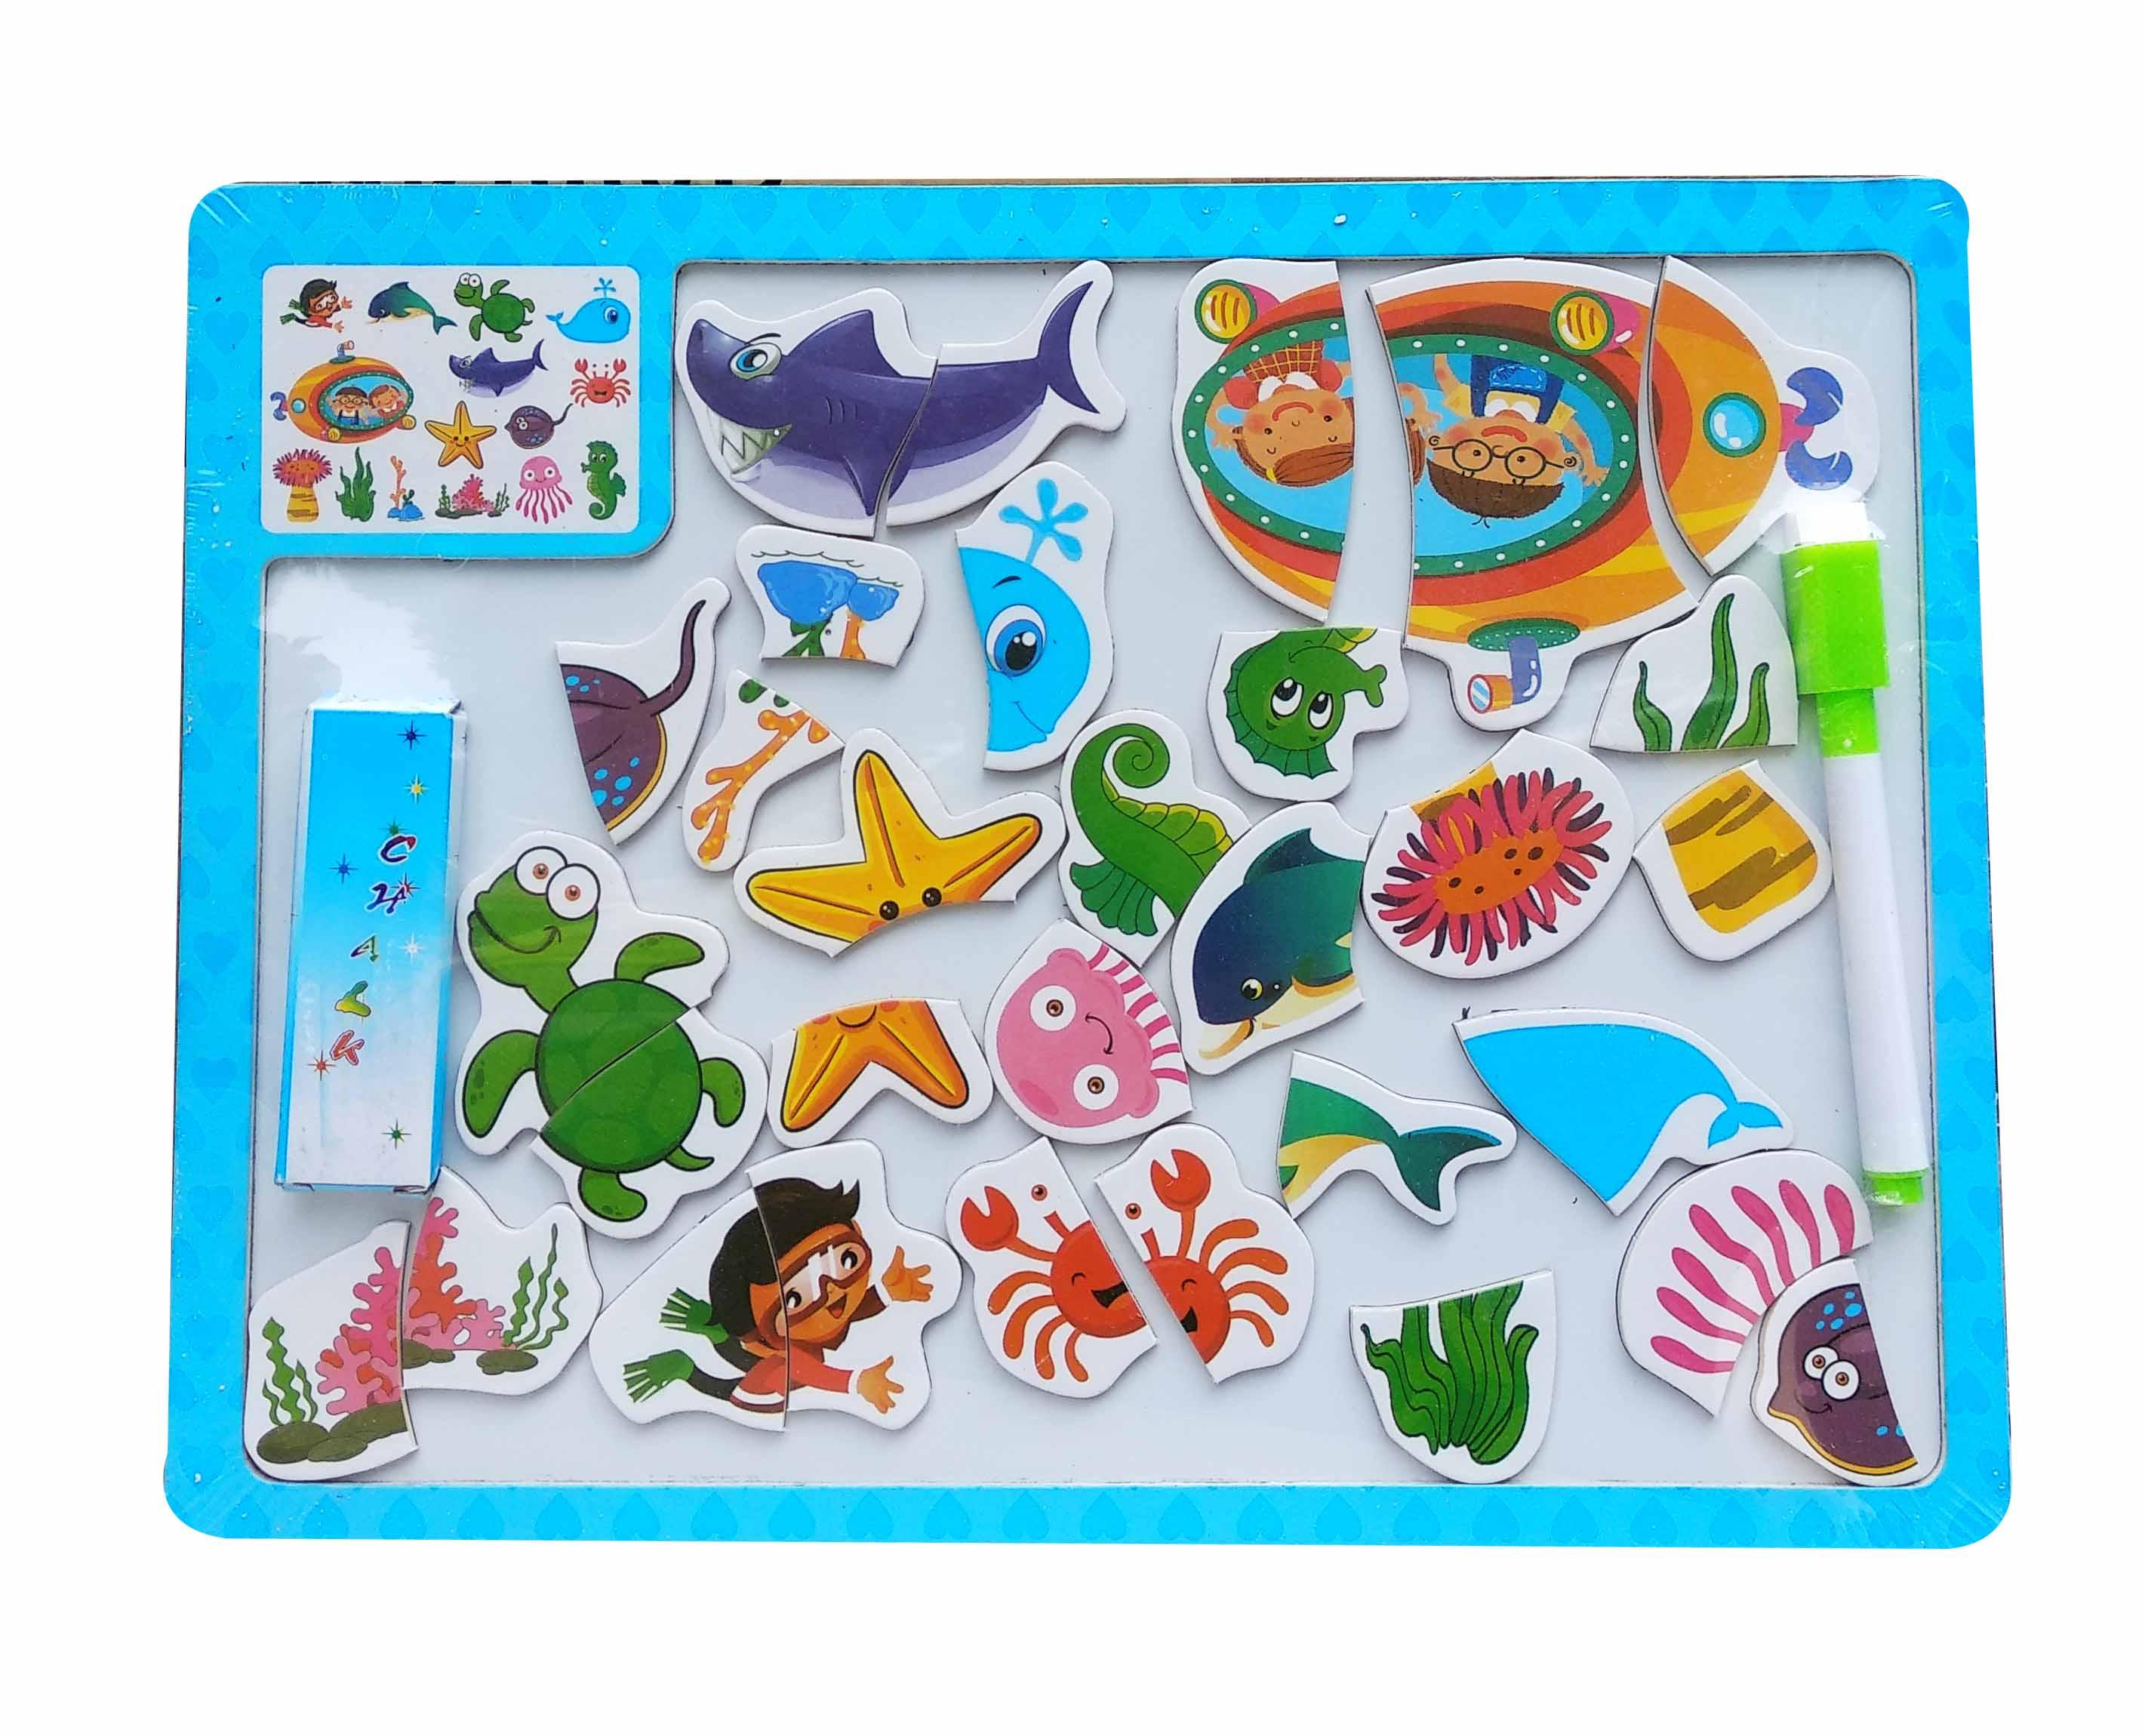 toko mainan online WOODEN PUZZLE 2 IN 1 MAGNETIC - CX01